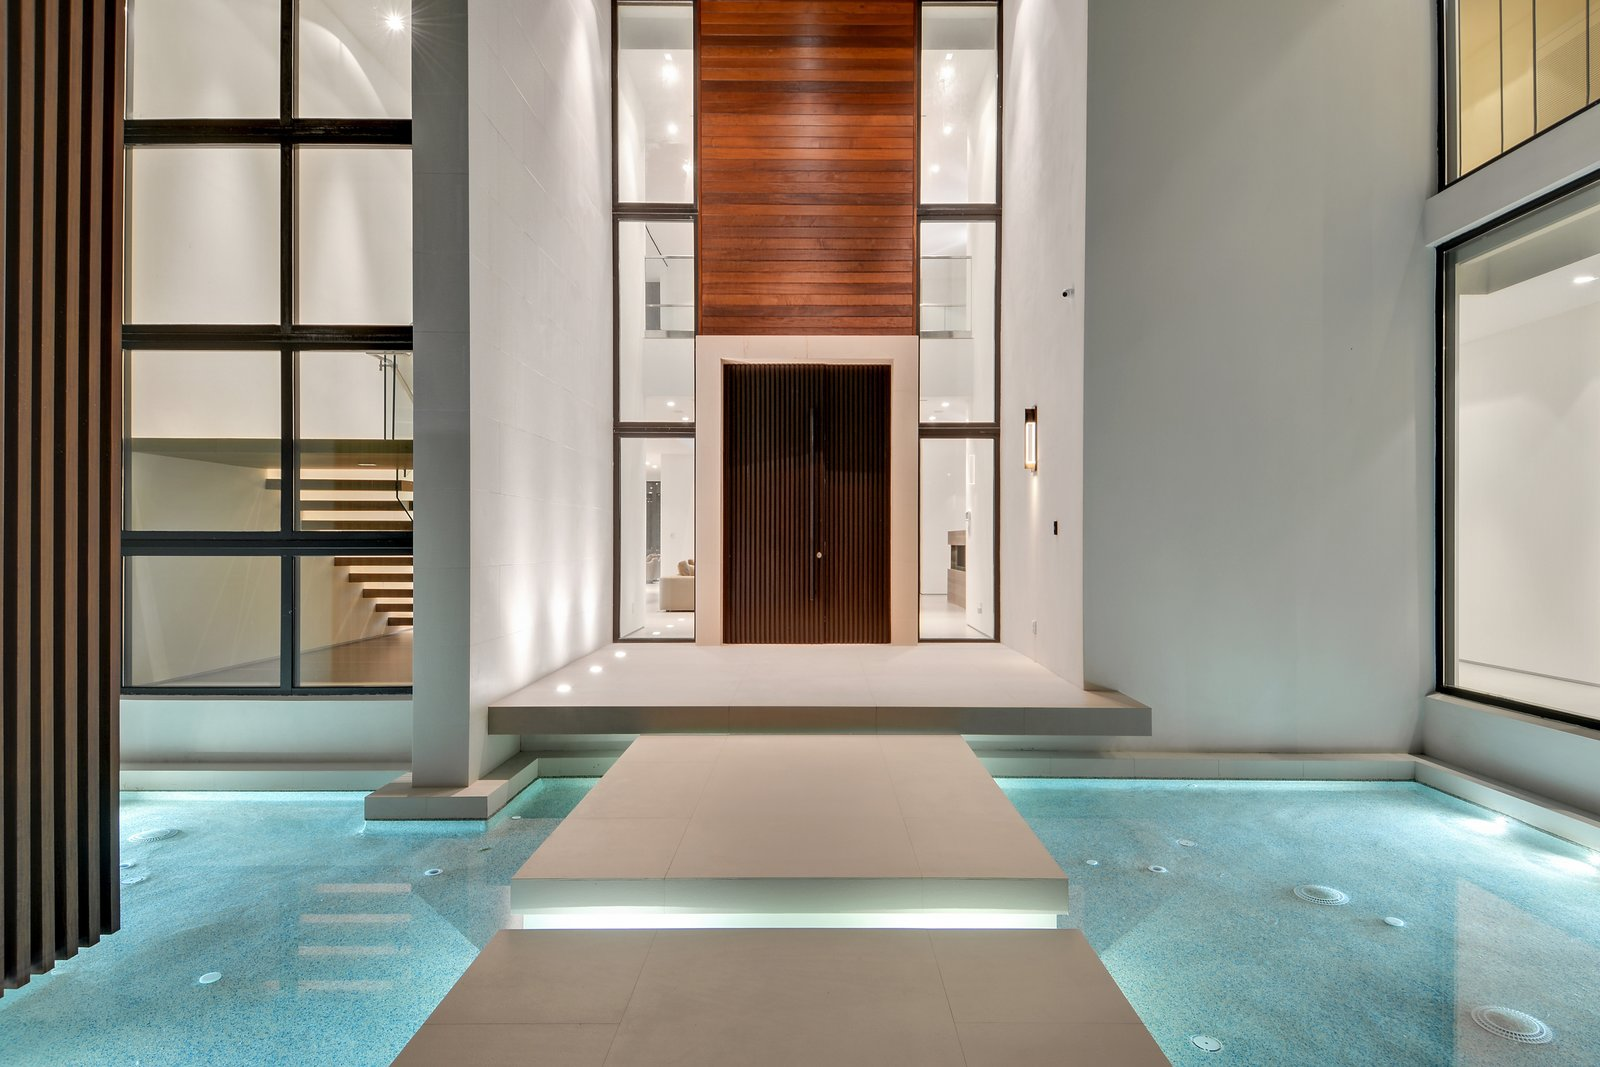 Residence front entrance with floating stepping stones and reflecting pond  Allison Road Residence by Choeff Levy Fischman